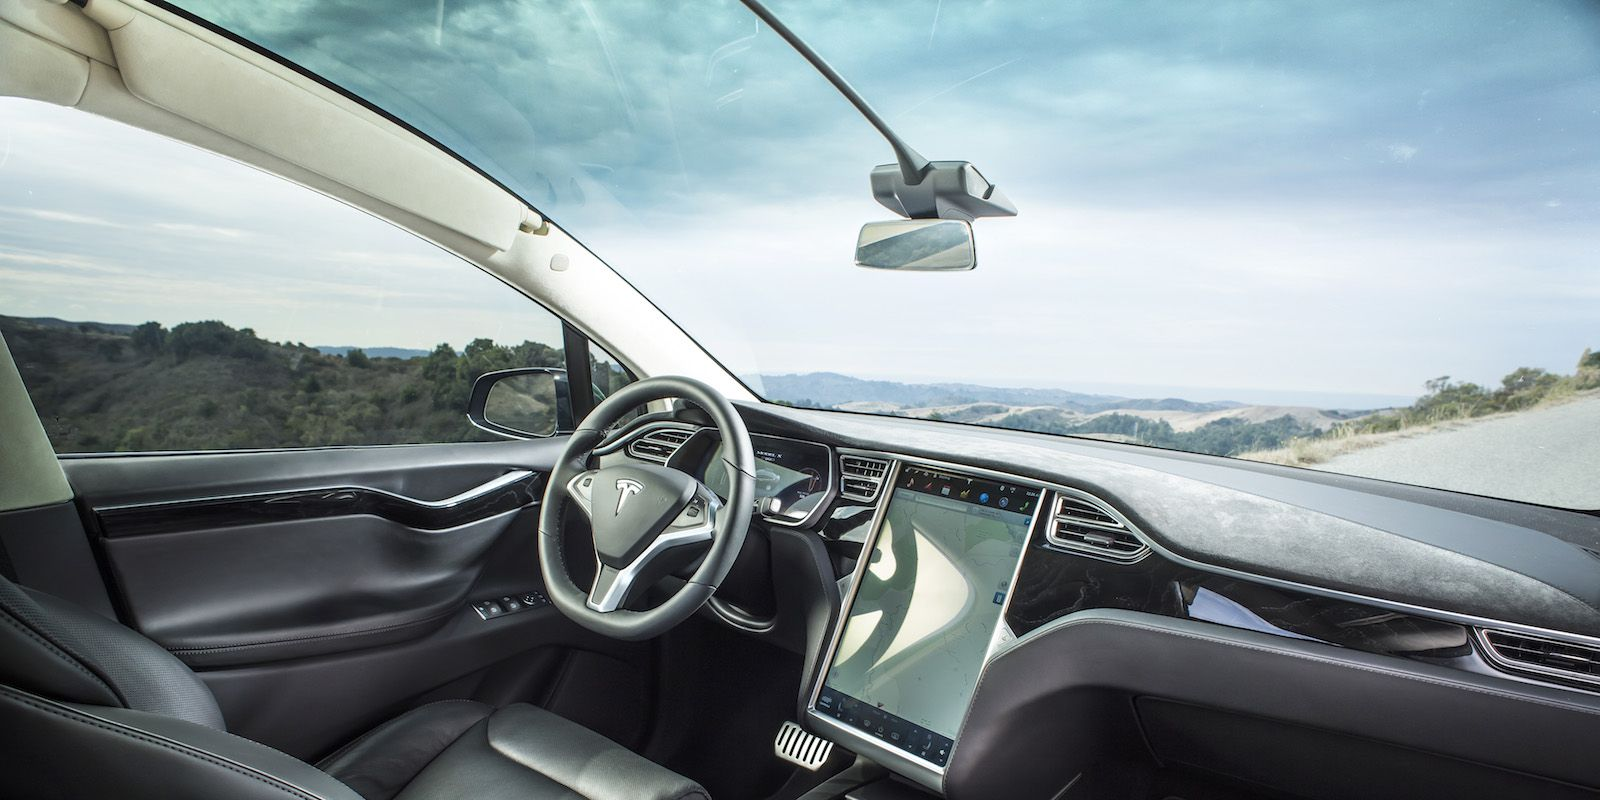 Tesla Brings Back Radio To Its Cars But It Costs $500